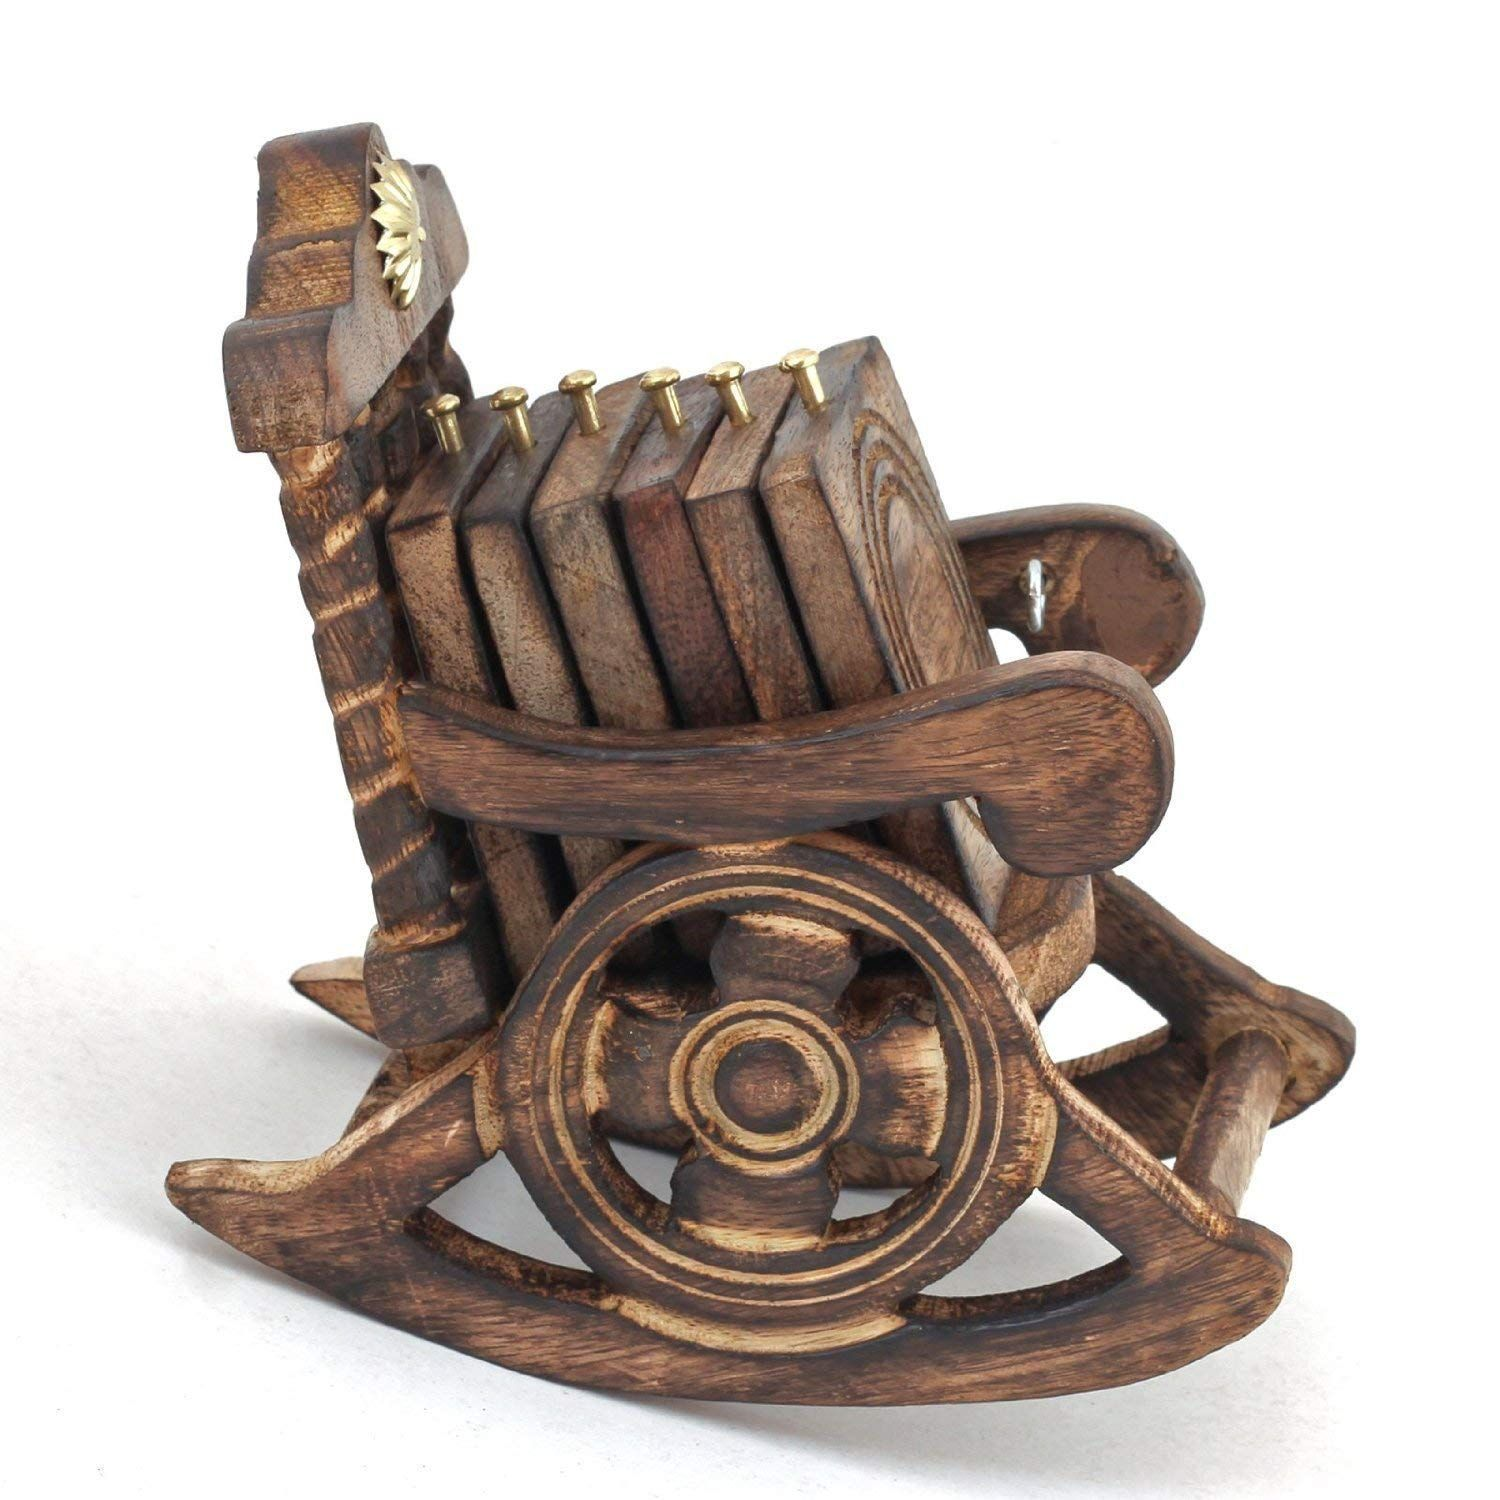 Ekam Art Rocking Chair Kitchen & Dining Wooden Tea Coaster